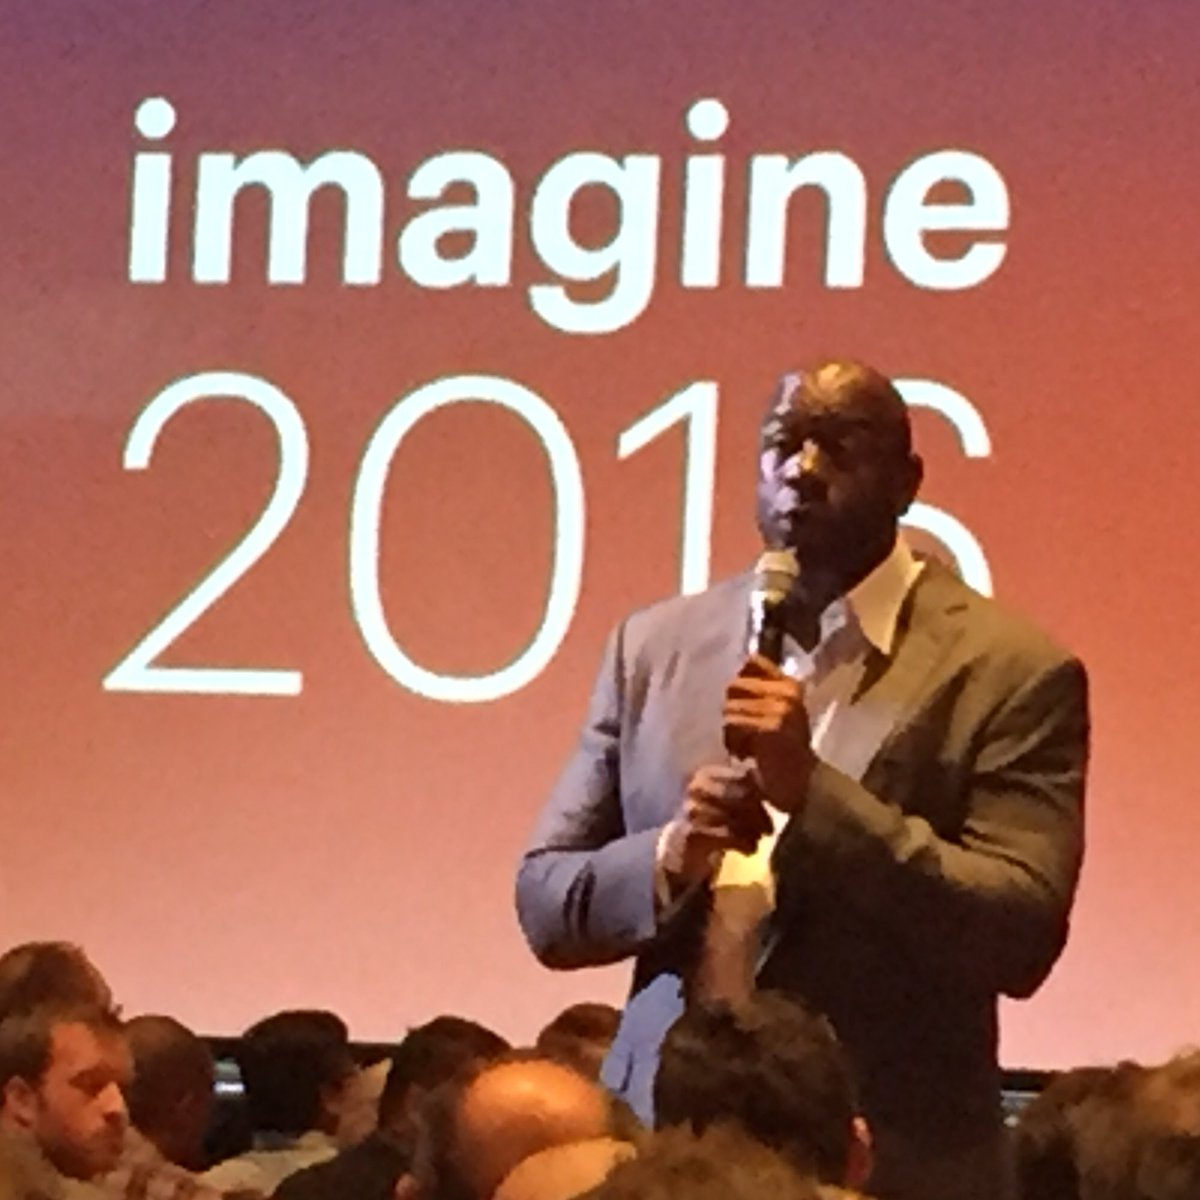 annhud: Larry & Michael made their teammates better. You've got to make your teammates better @MagicJohnson #MagentoImagine https://t.co/1fib7EYY16